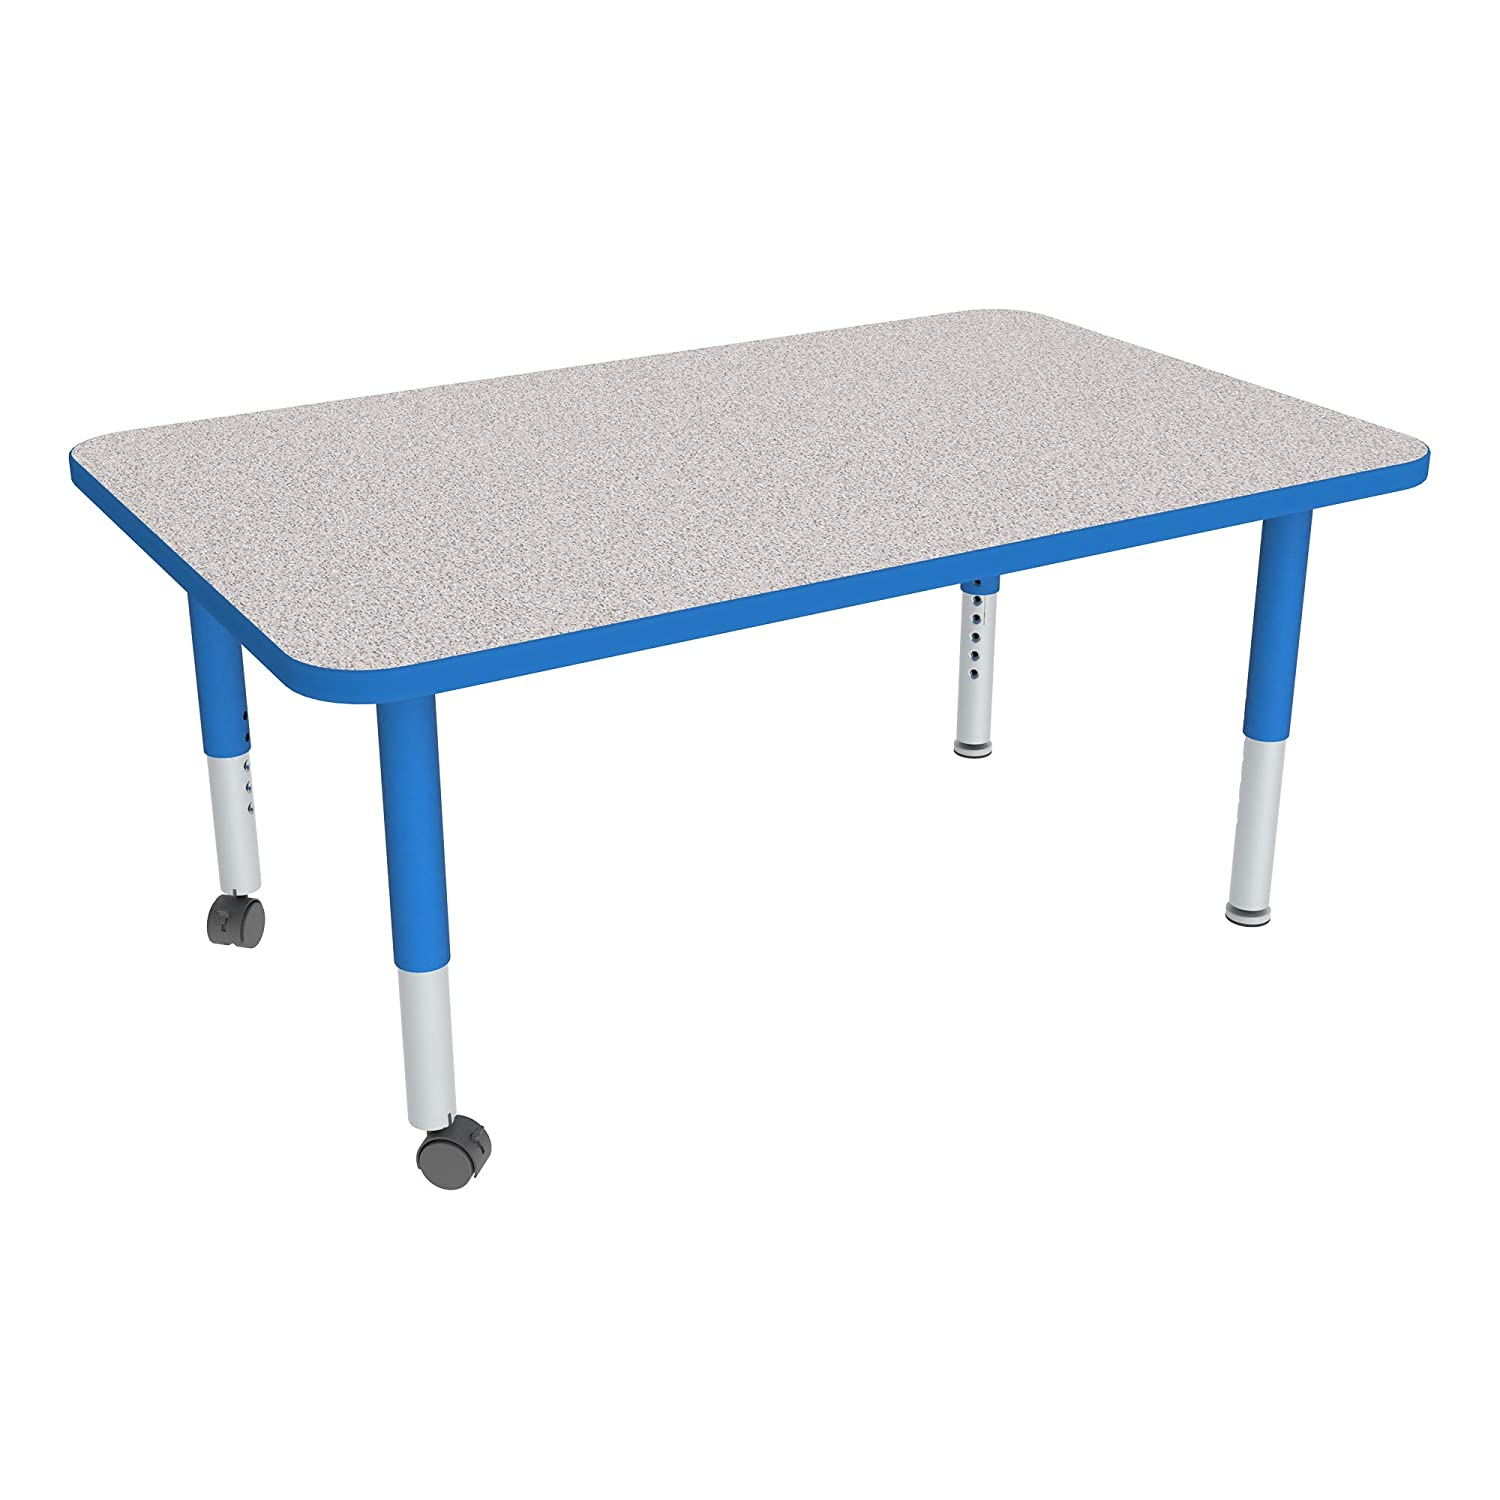 30 W x 60 L Rectangle Adjustable-Height Mobile Preschool Activity Table